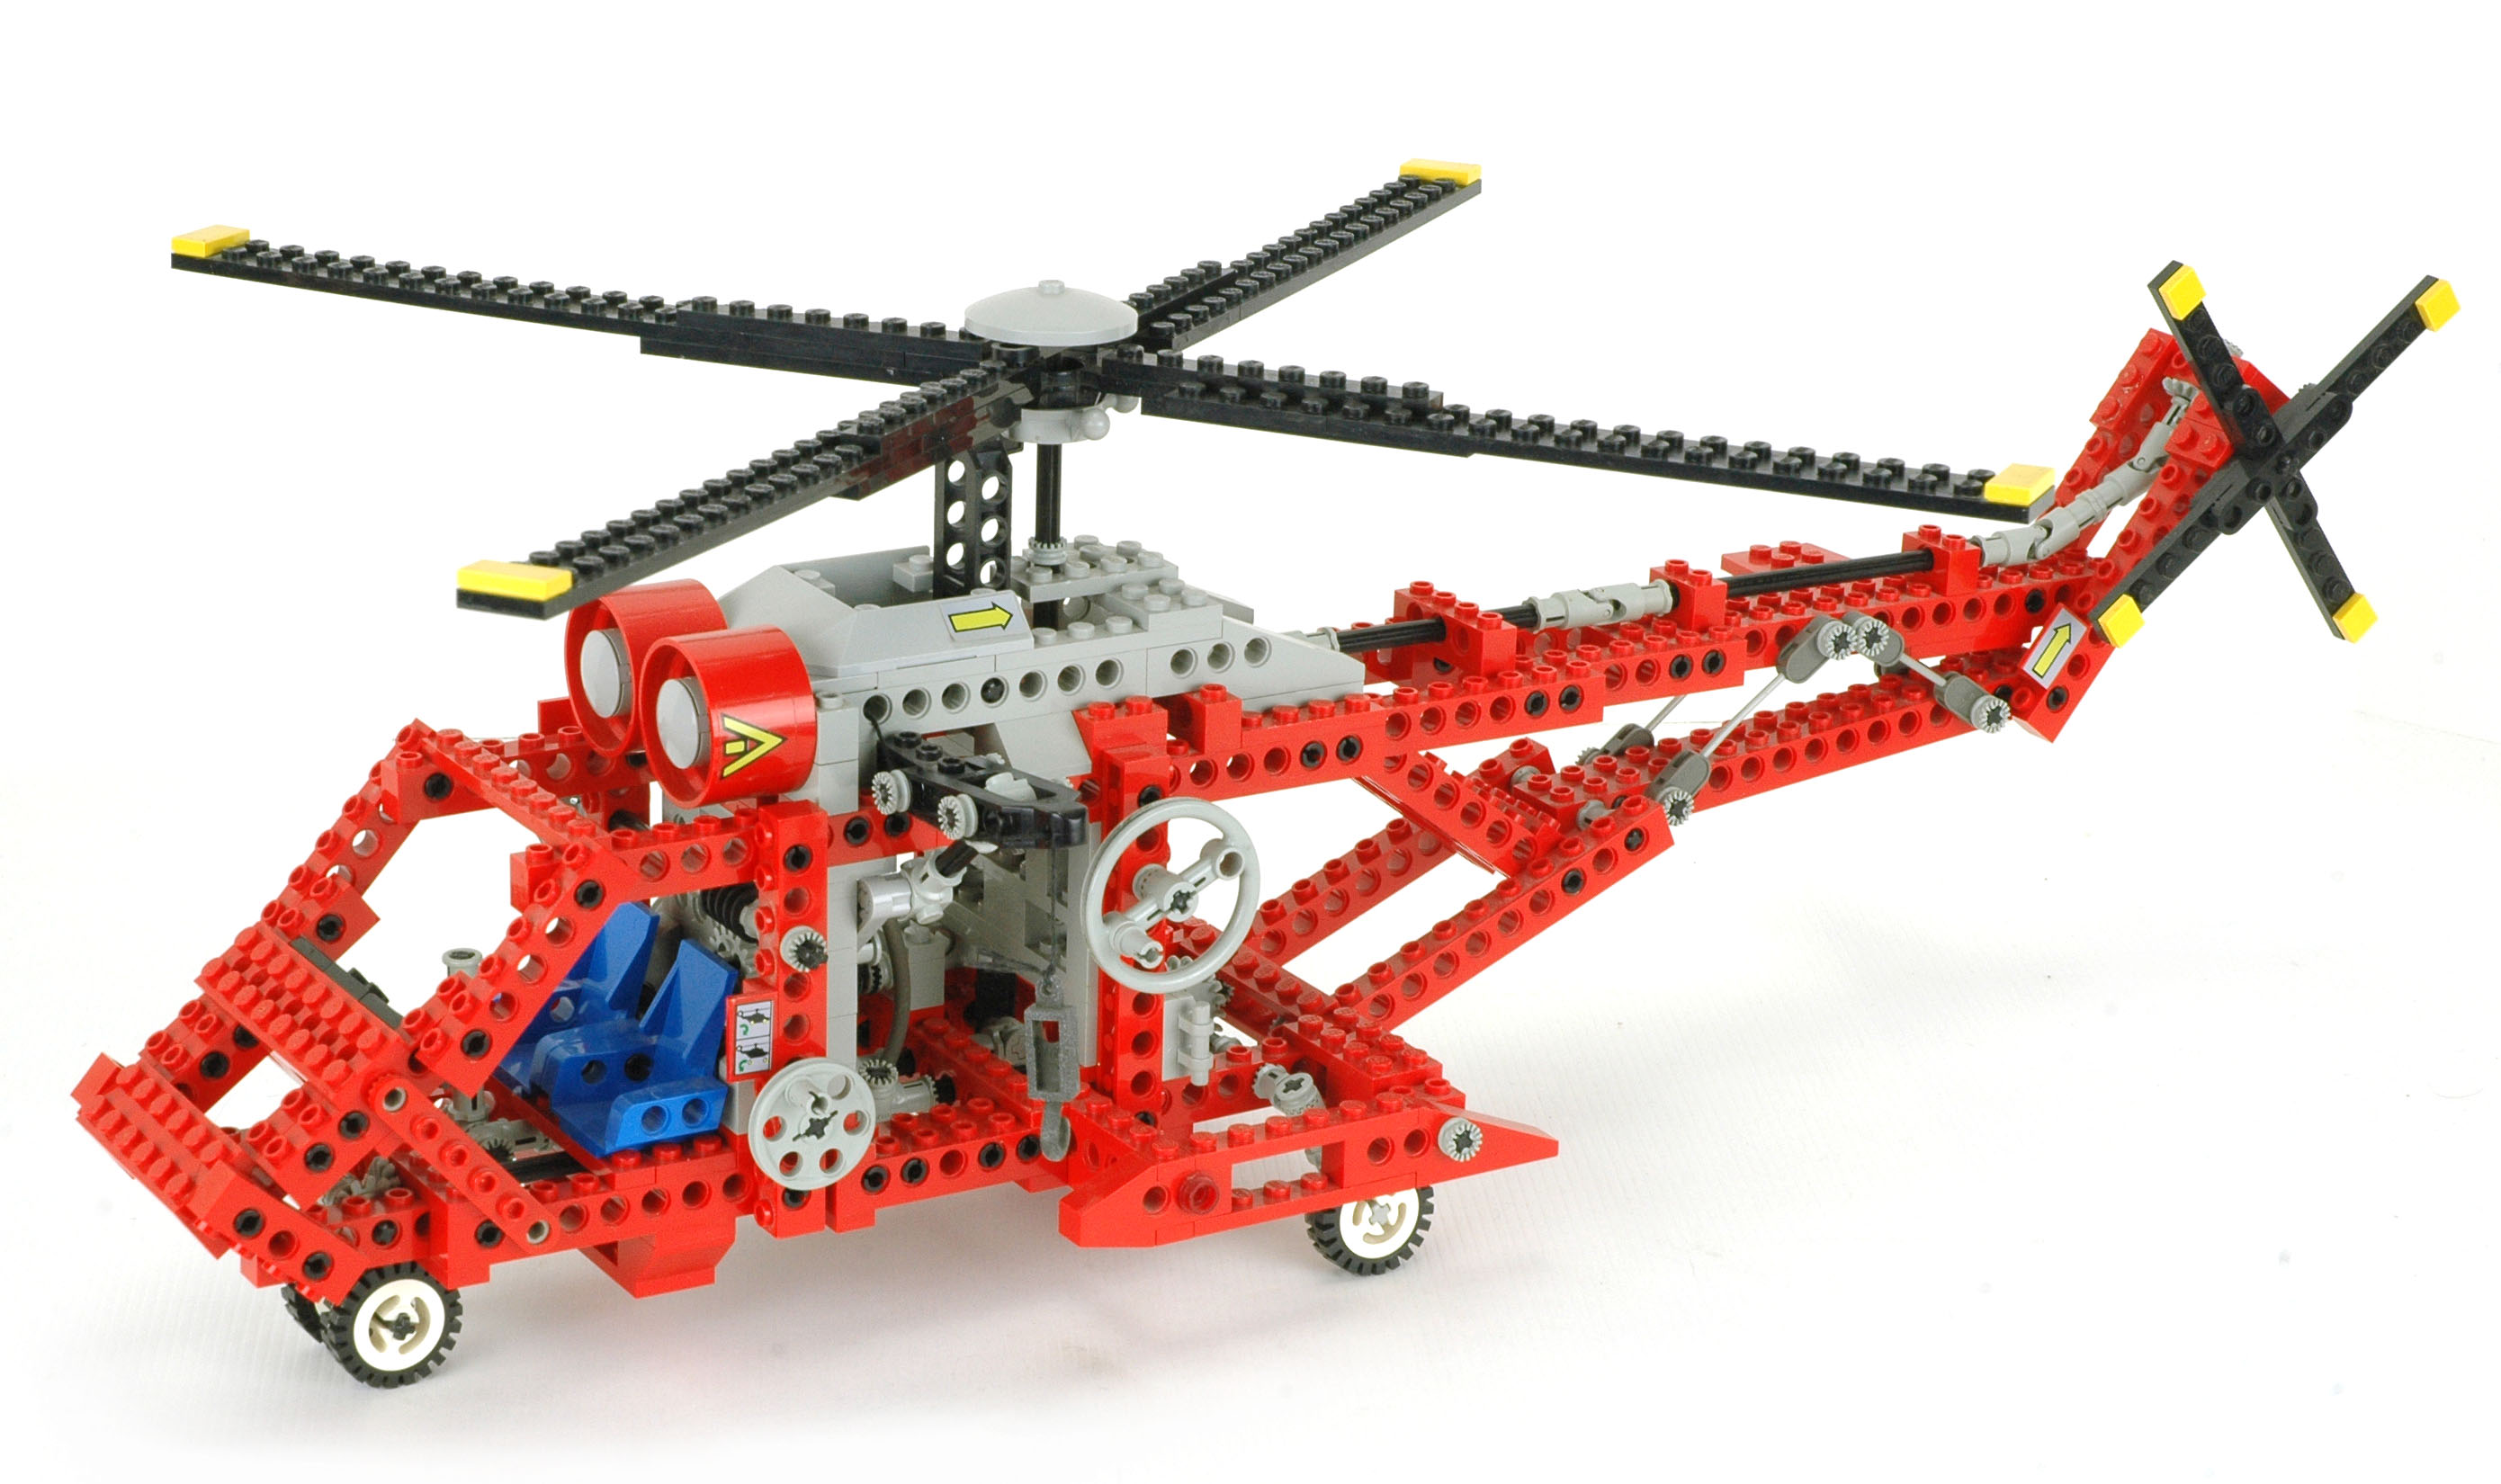 technic helicopter 9396 with Lego Technic Helicopter on Rescue Helicopter 8068 also Gallery furthermore Lego Vehicles Collection Set 5004190 in addition Lego Helicopter Set 9396 Instructions moreover The Best 10 Lego Set Of All Time.